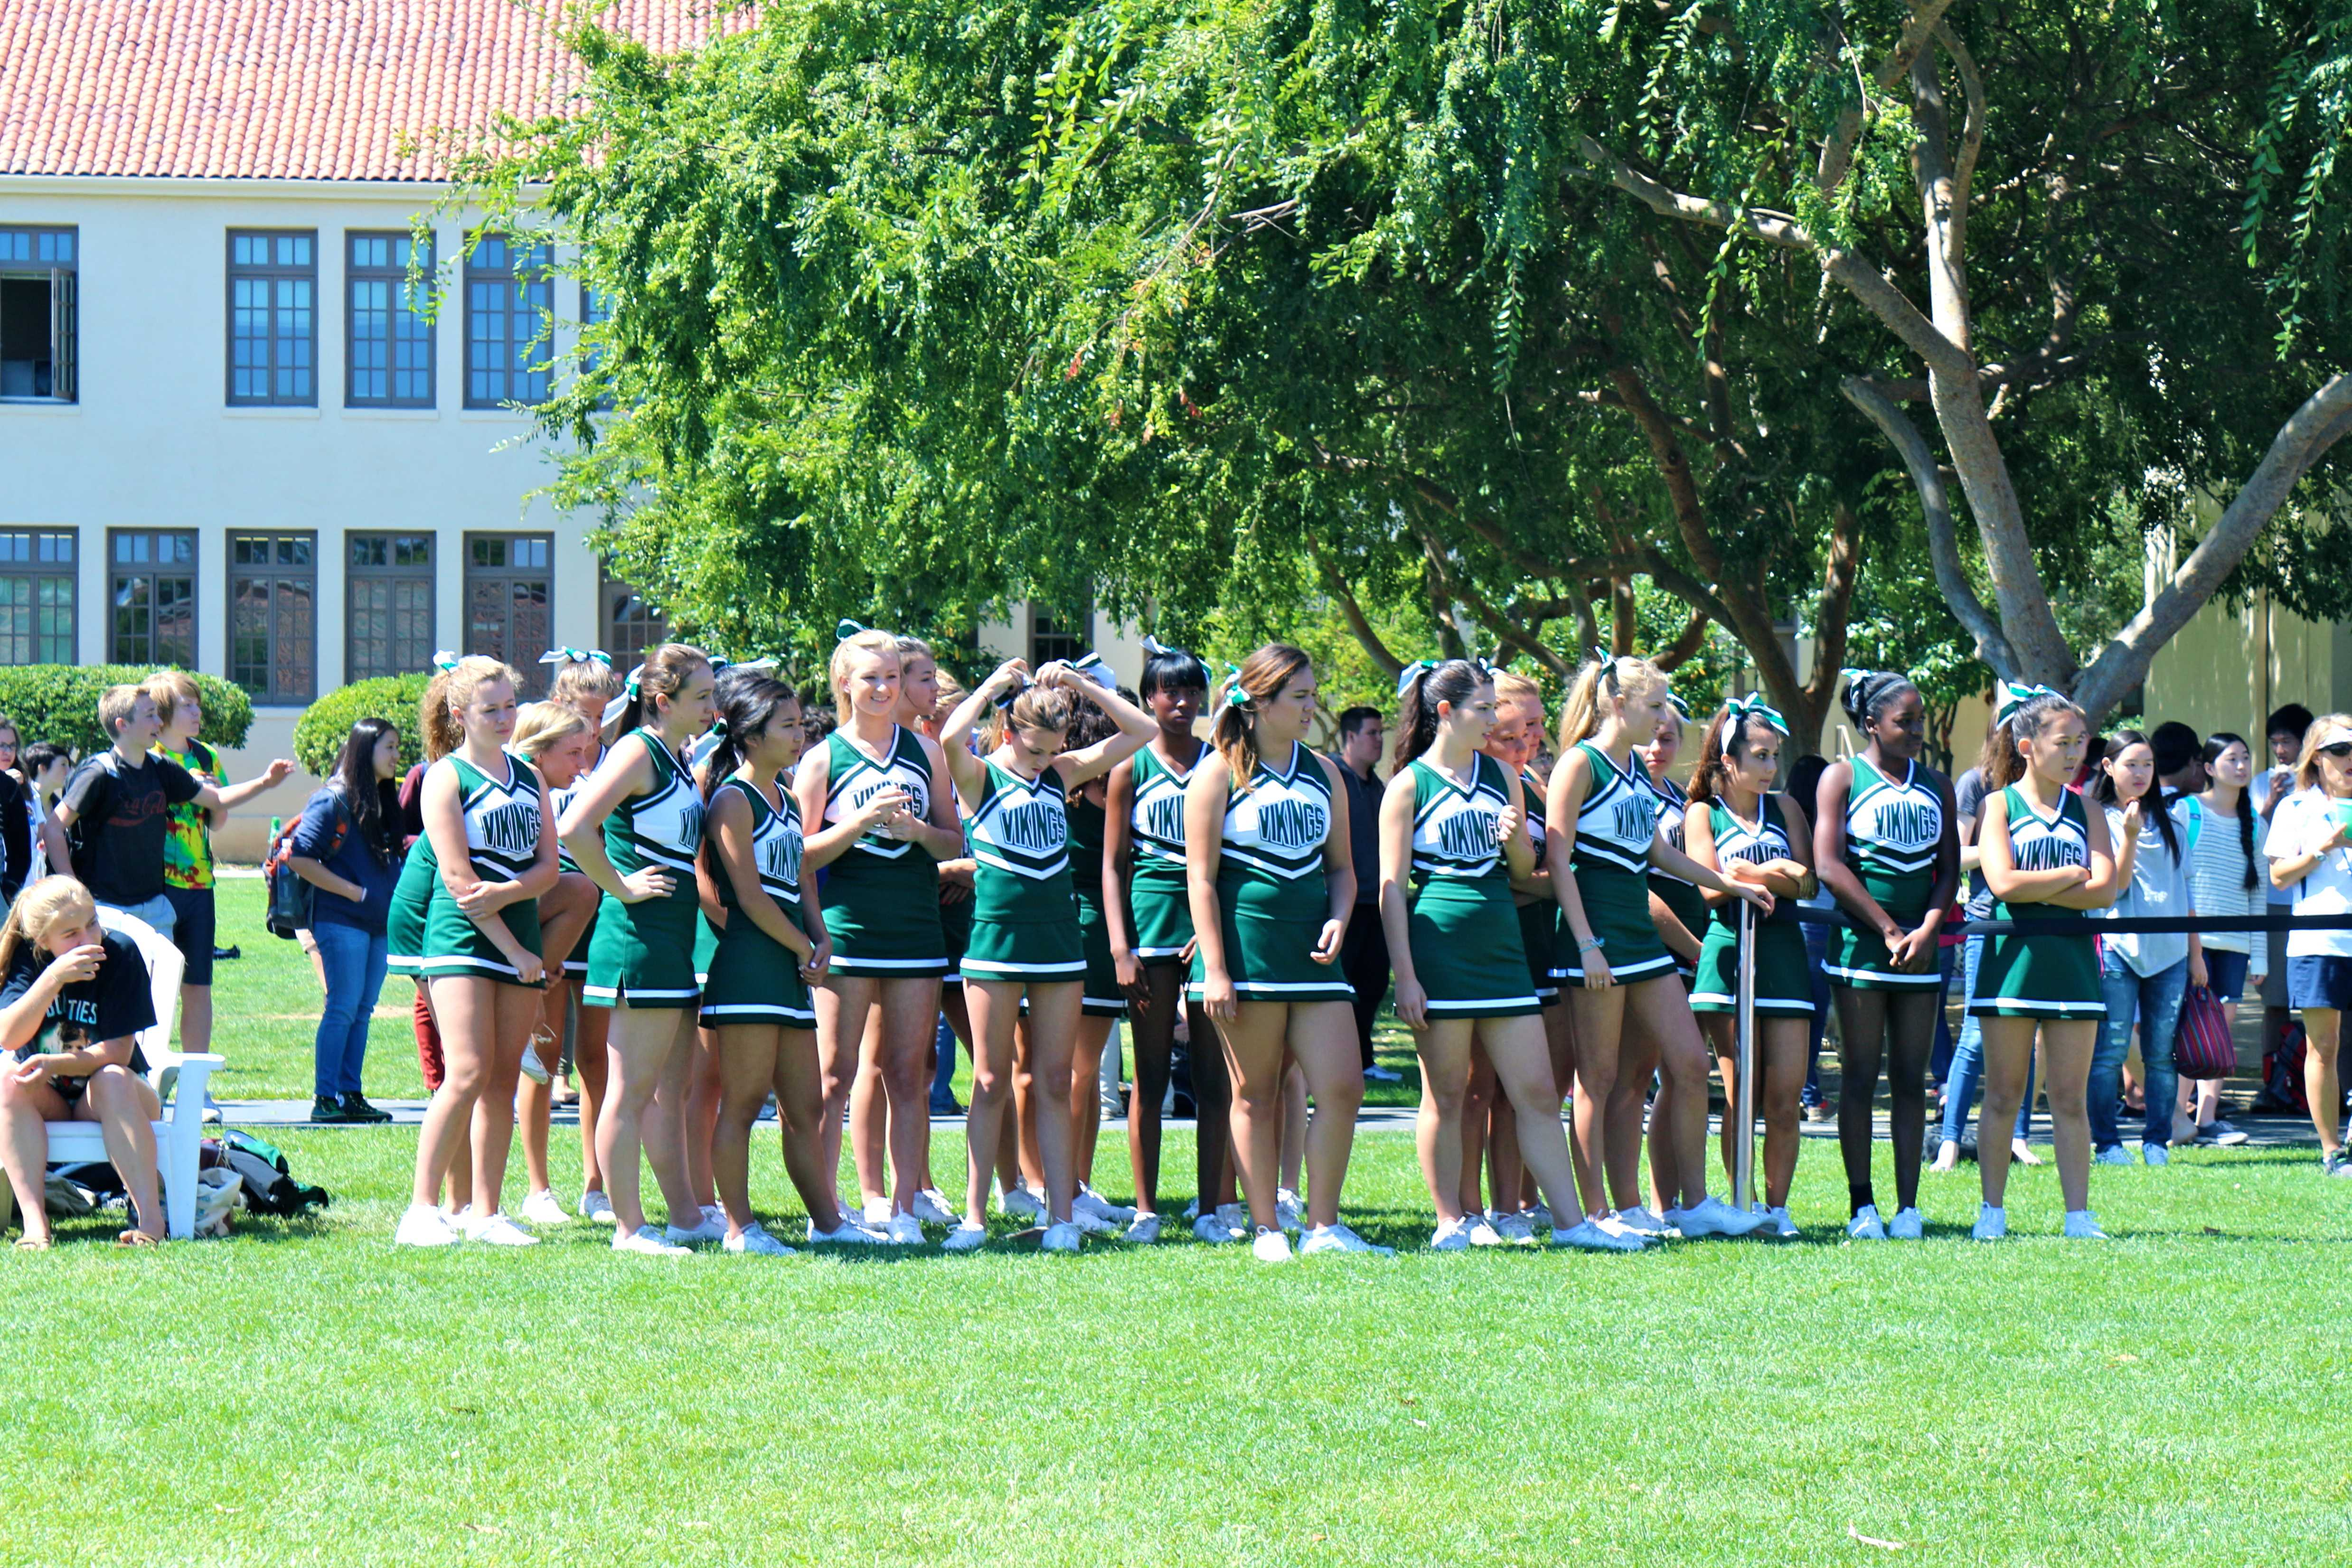 Cheerleaders prepare to return to center stage during the rally. Photo by Frankie Comey